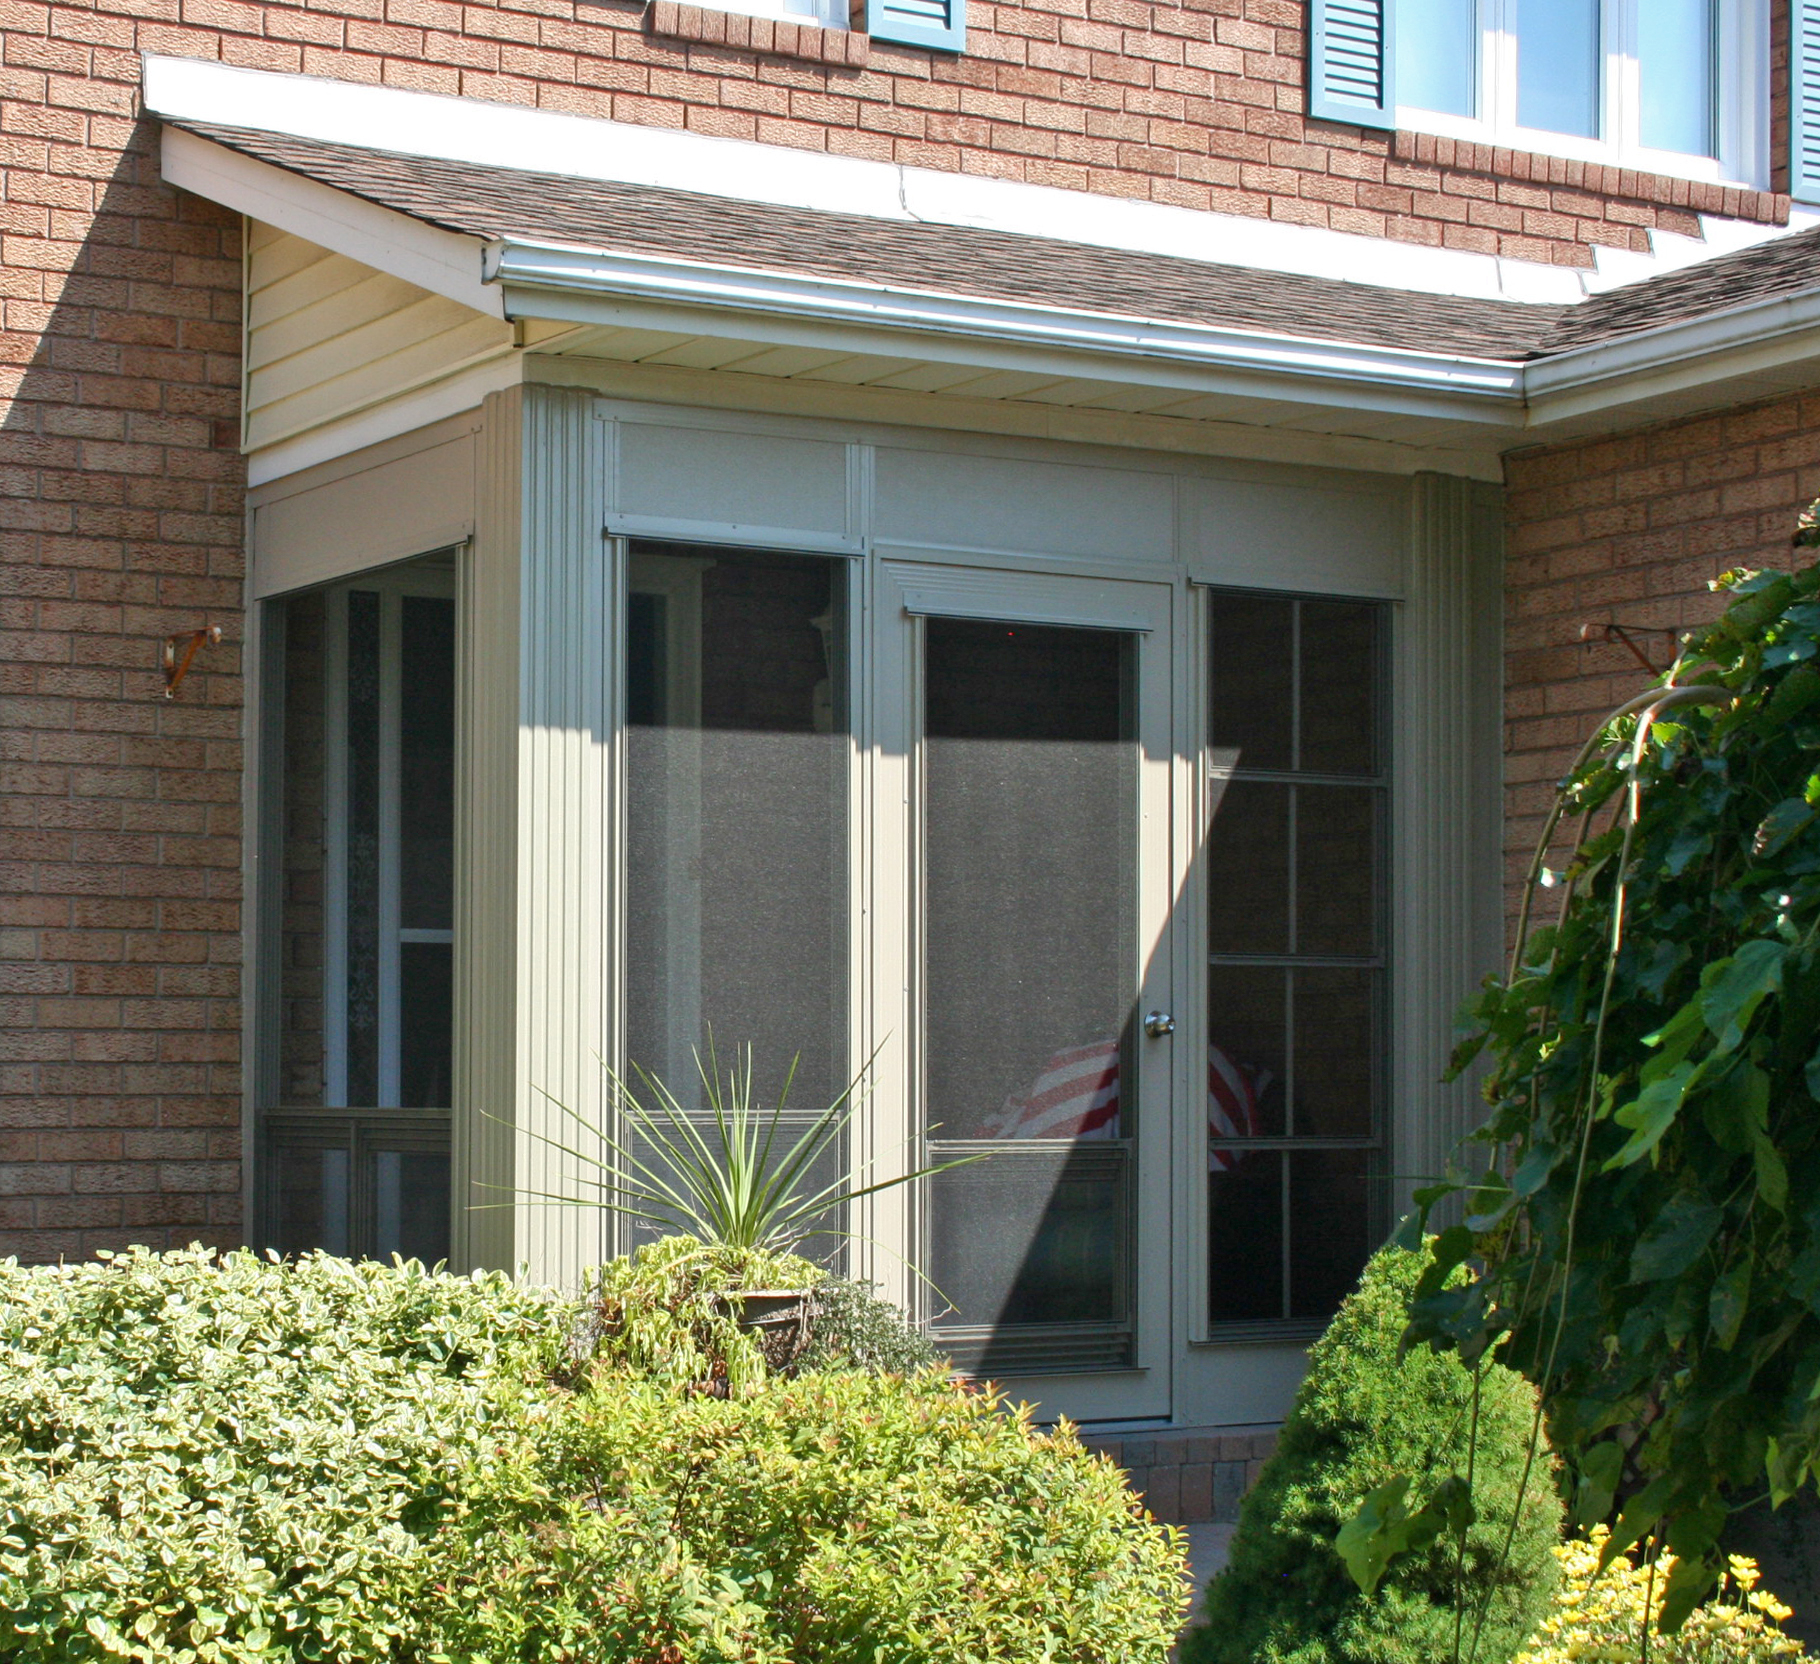 edmonton screen grande porch prairie screens fixed rsz rooms solutions calgary systems